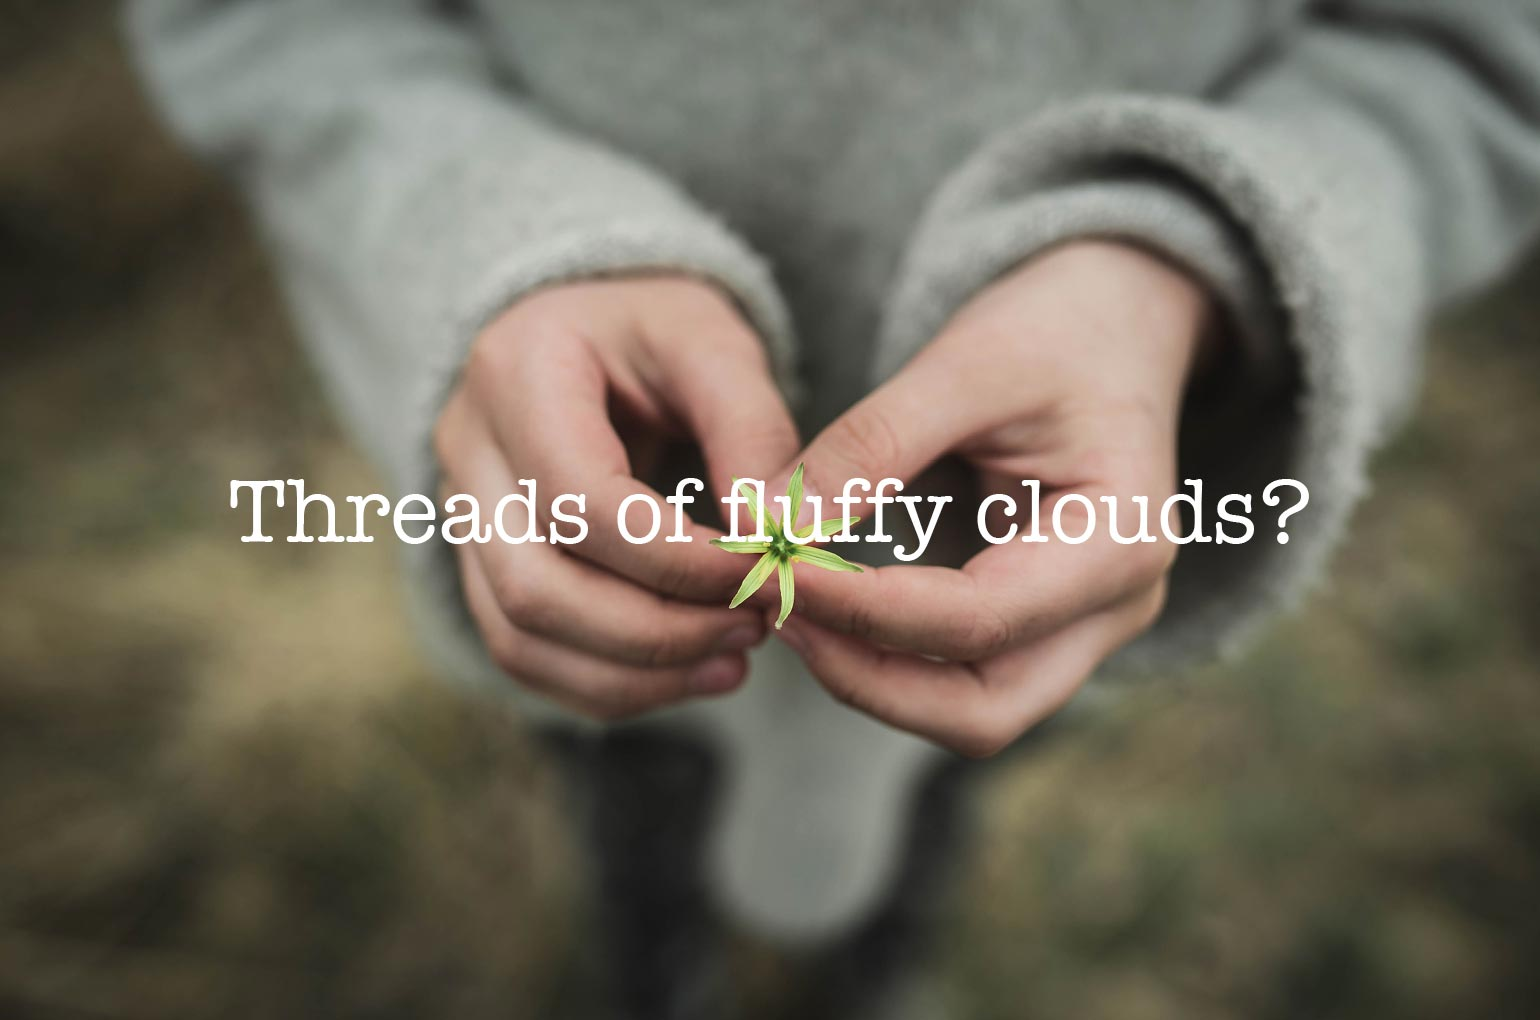 Threads of fluffy clouds